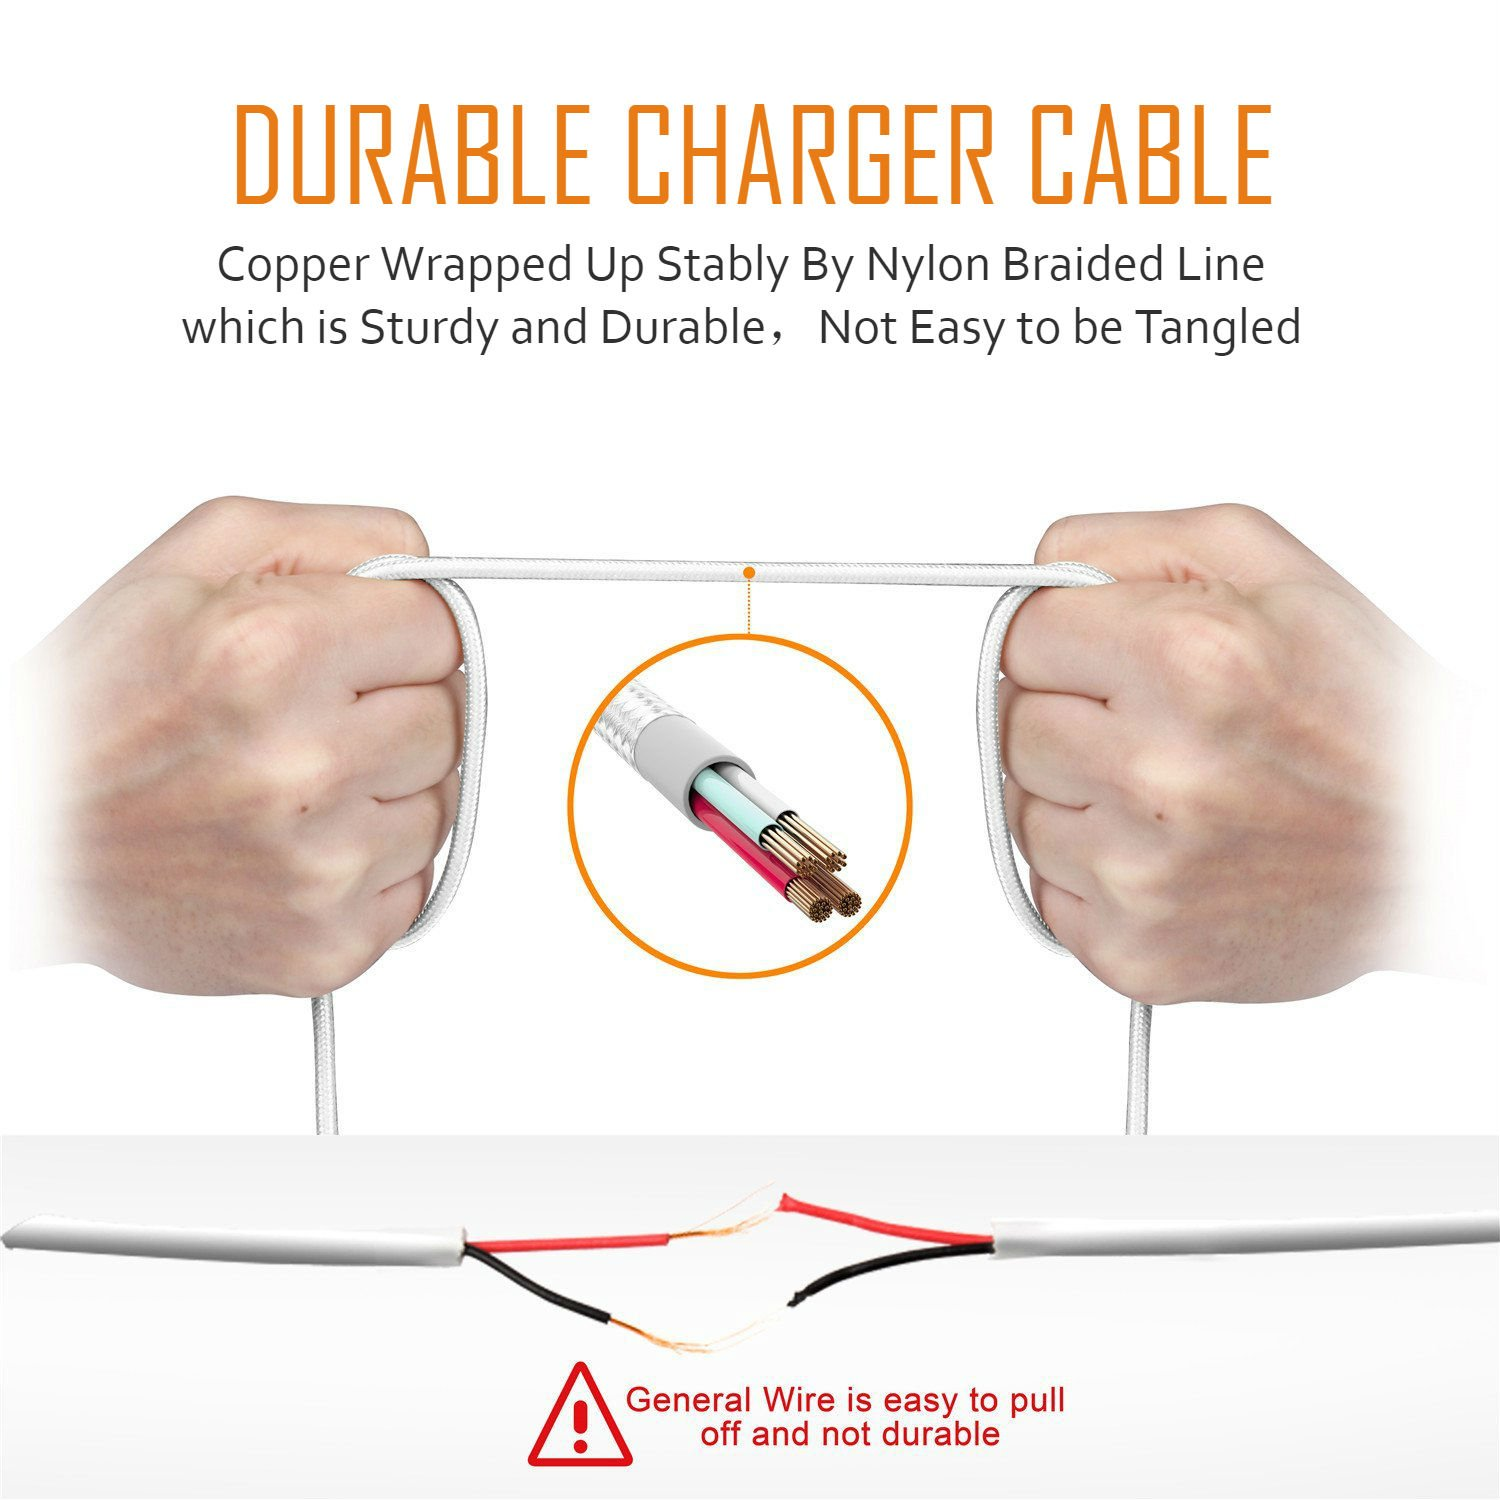 Usb Wall Charger Certified 5w Universal Portable Travel Dj Wiring Diagram Adapter W Braided Micro 6ft 2m High Speed Cable For Samsung Lg Motorola Nexus